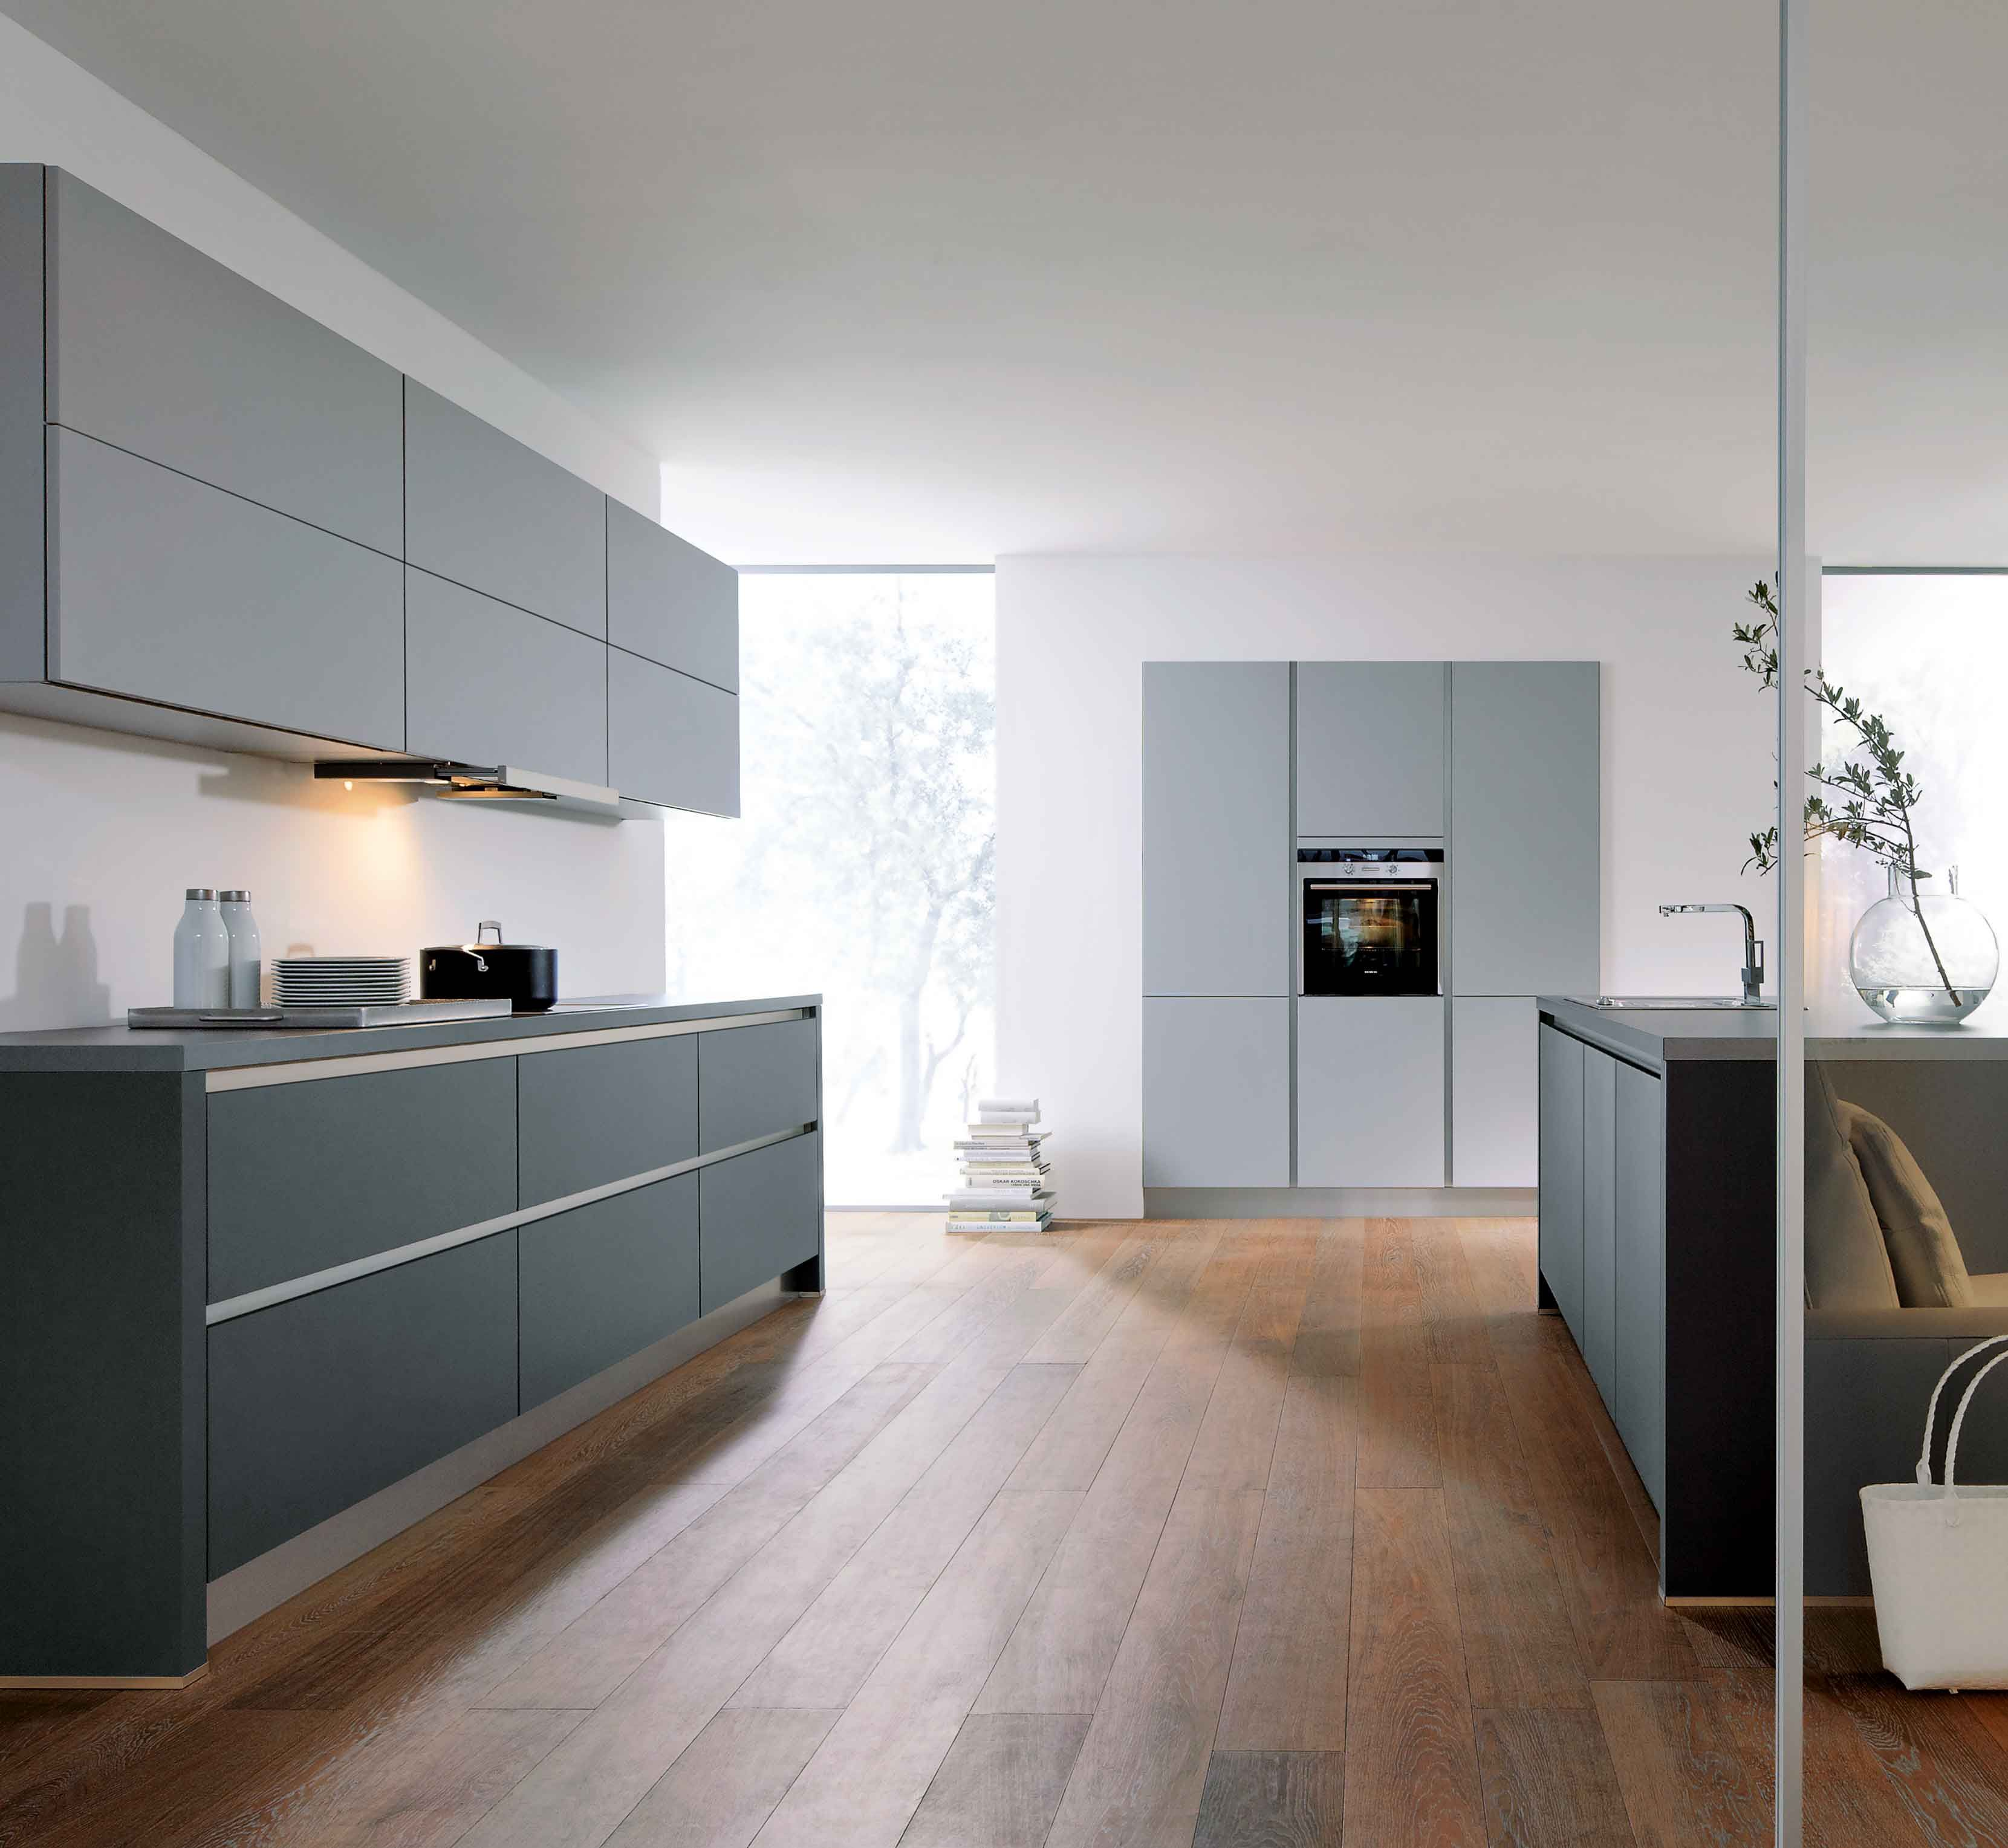 A lava black and stone grey kitchen. The grip ledges and plinth are ...